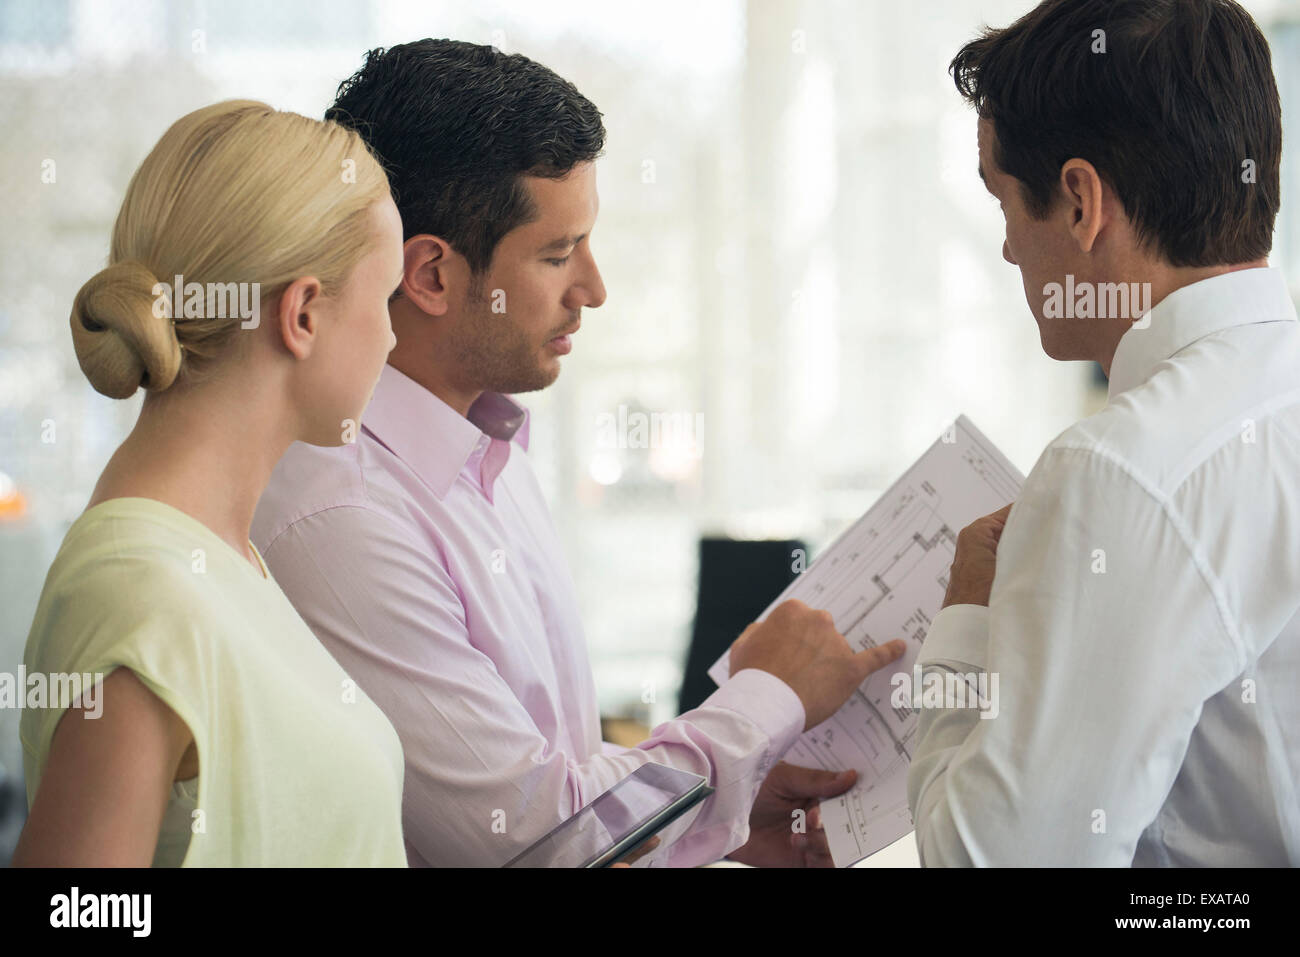 Architects discussing blueprints - Stock Image